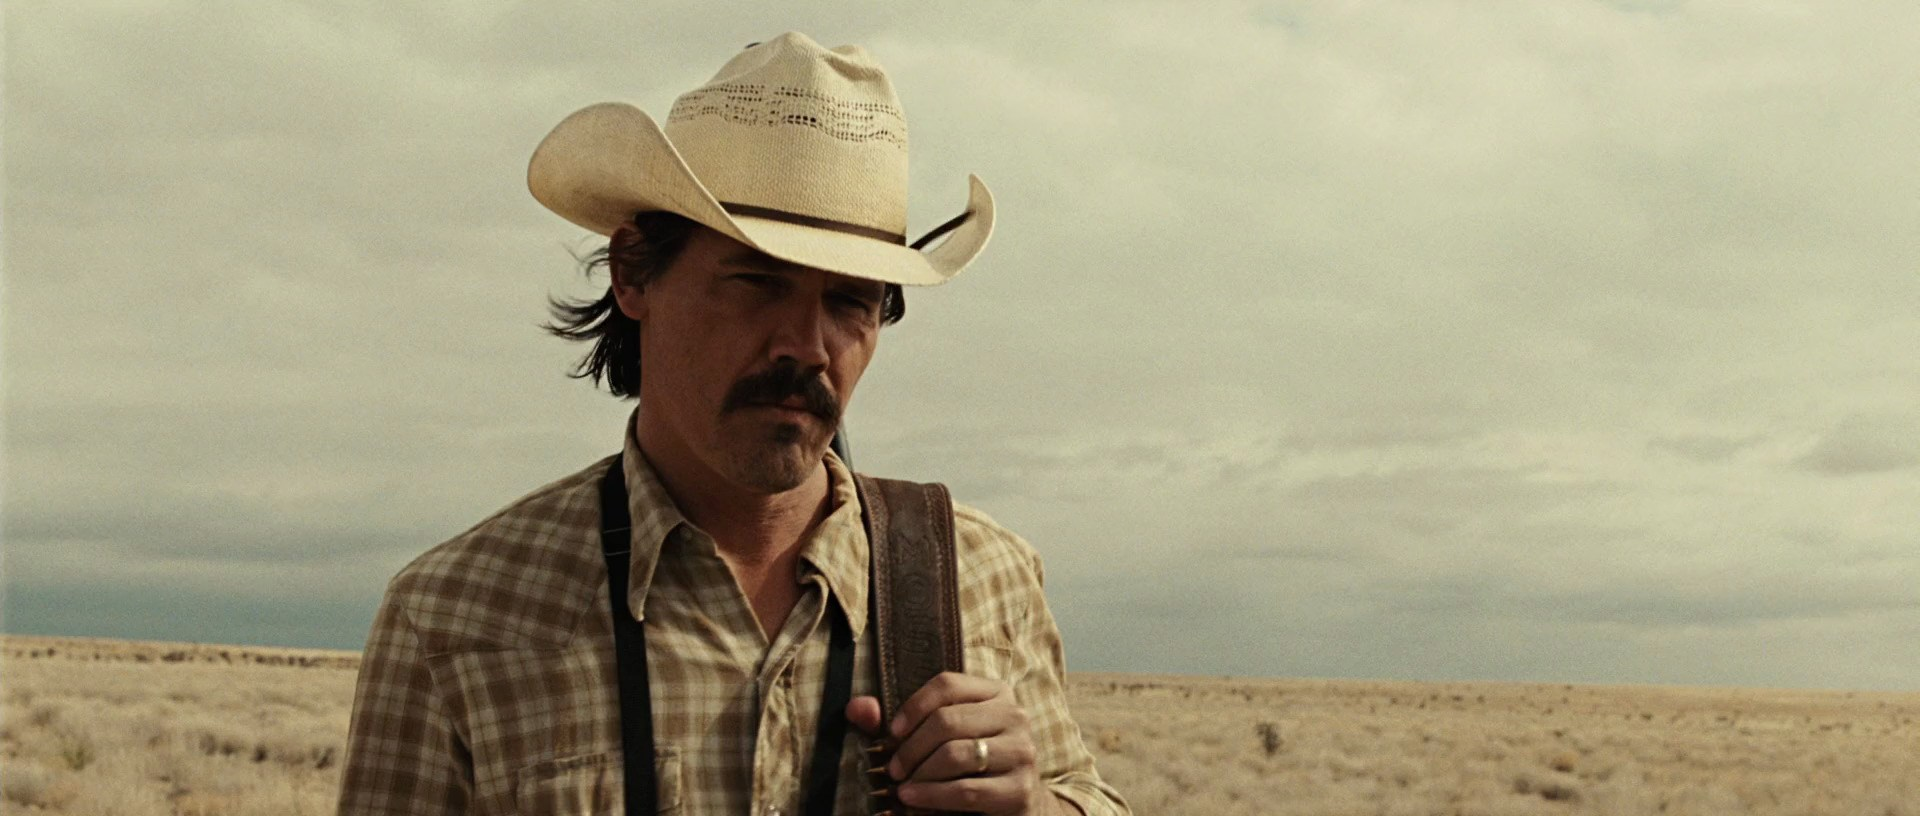 no-country-for-old-men-movie-screencaps.com-513.jpg